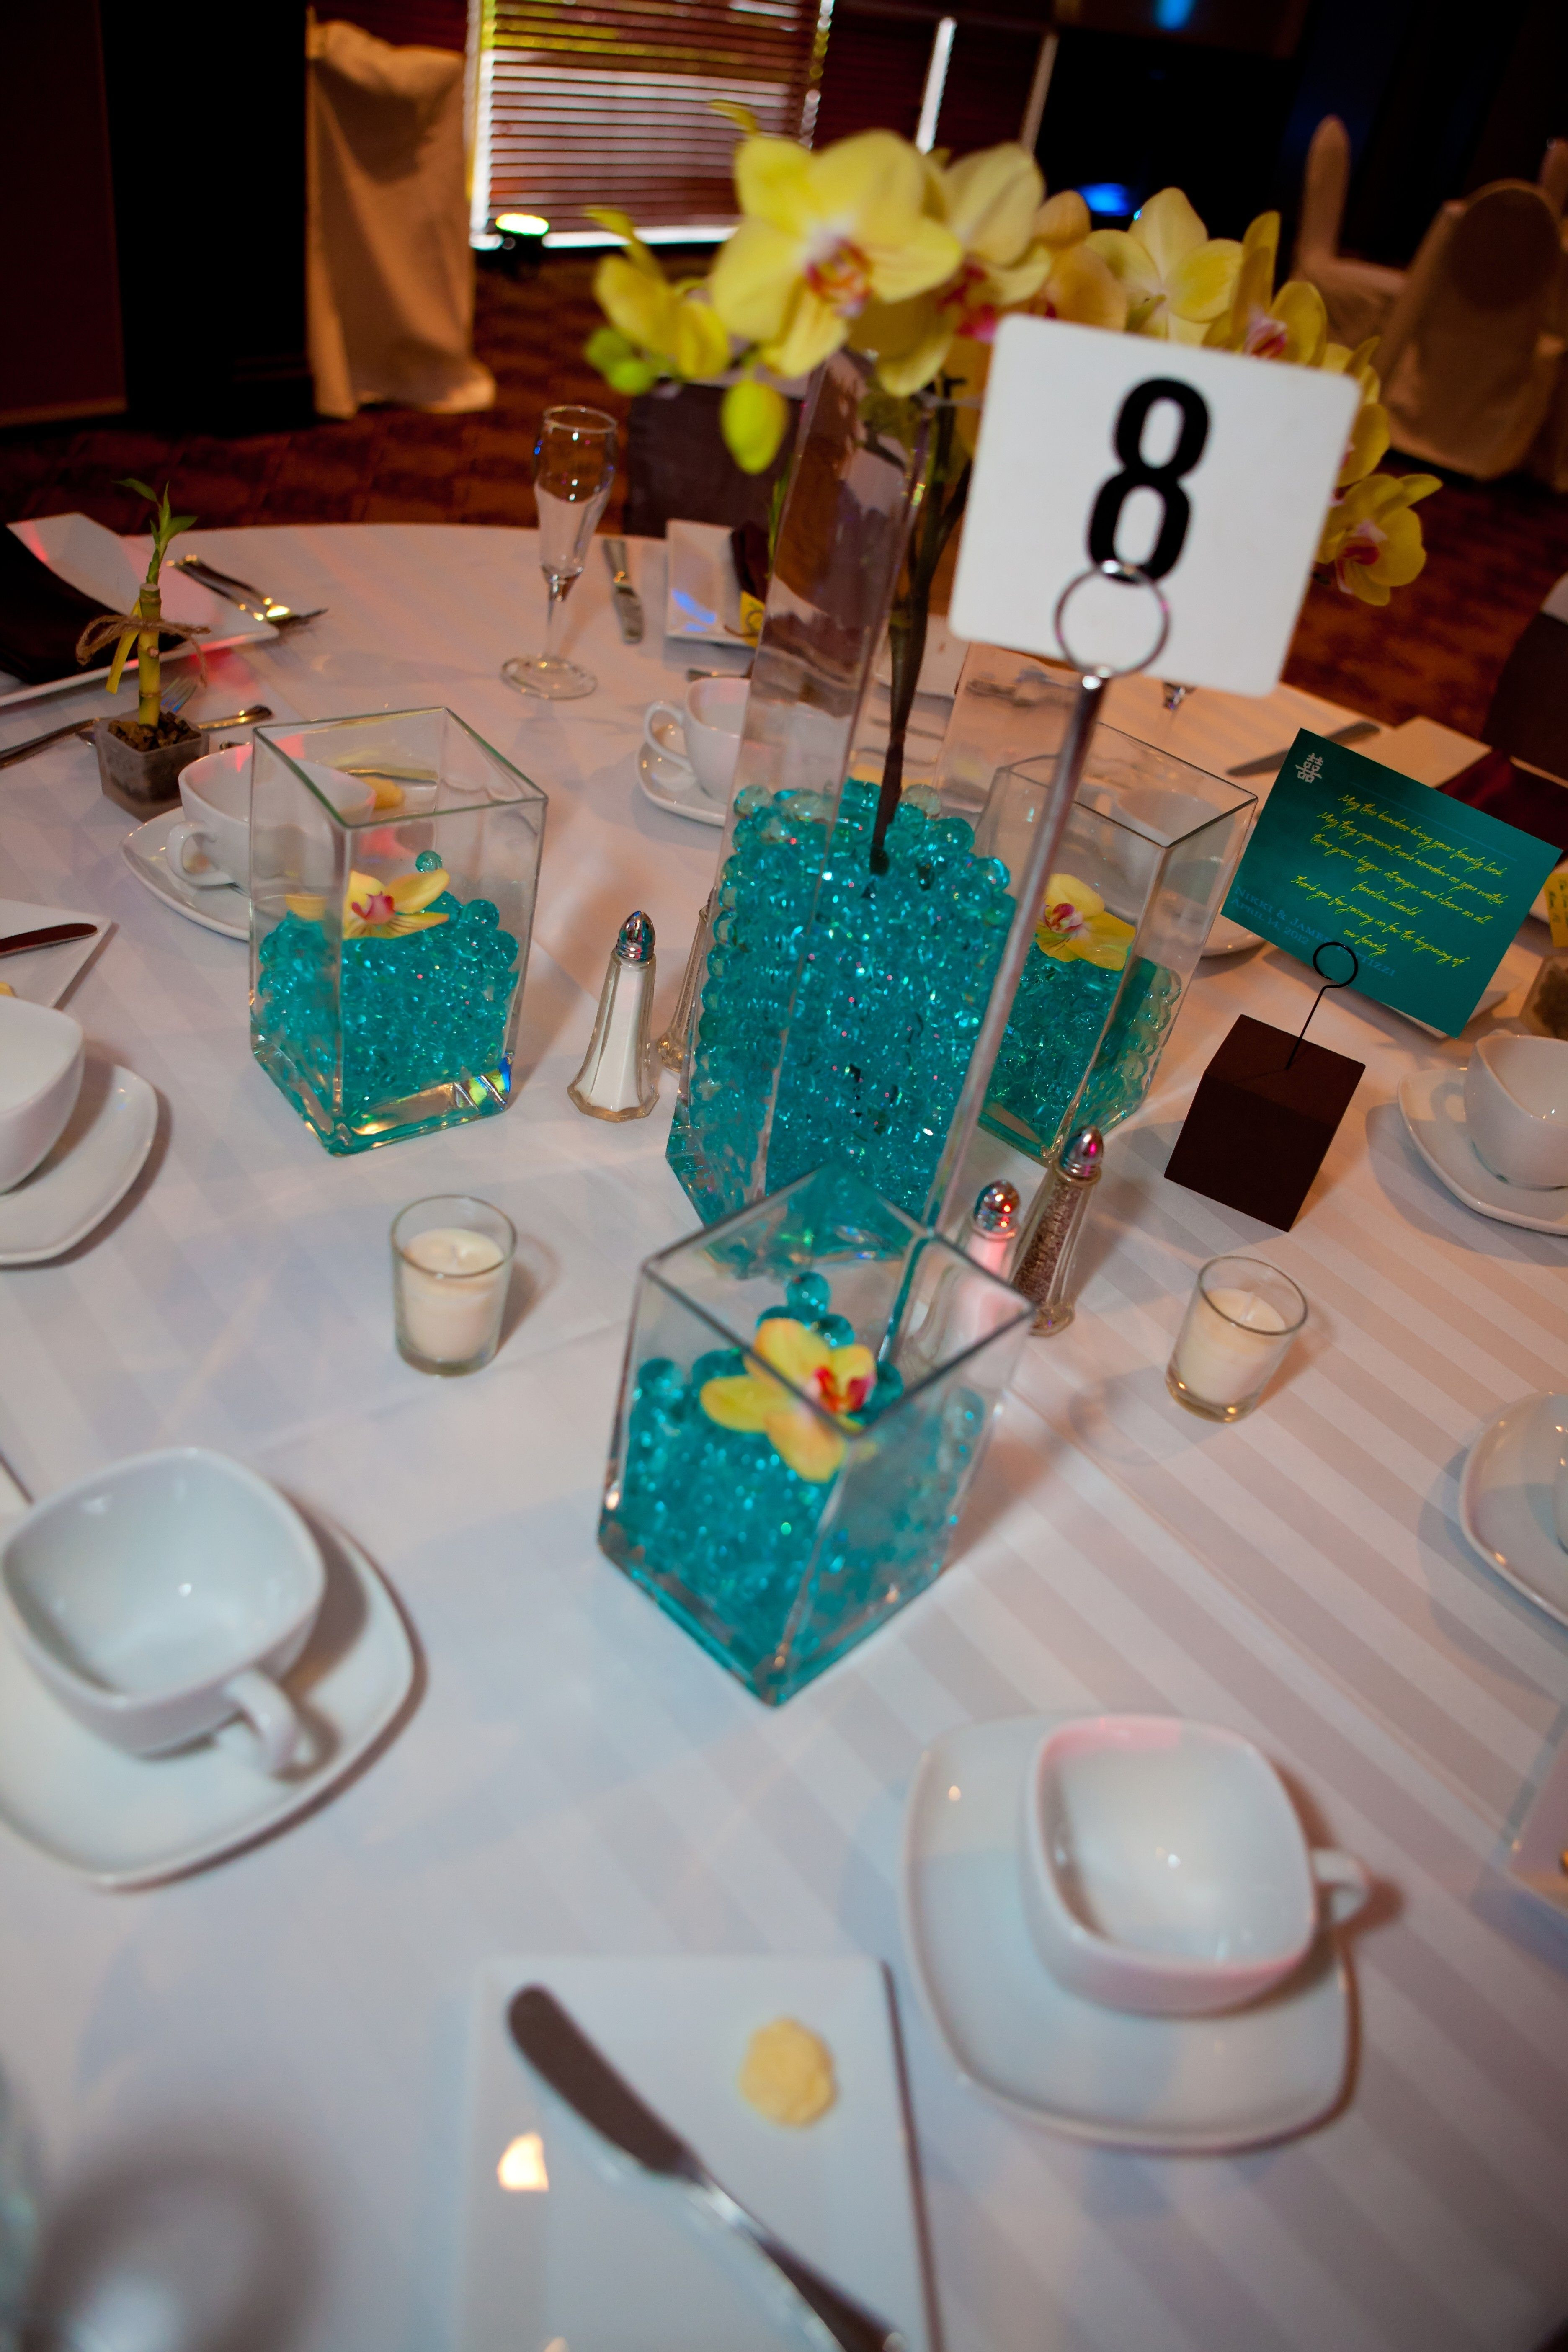 princeton china vase of wedding centerpieces square vases teal water beads yellow with regard to square vases teal water beads yellow orchids candles